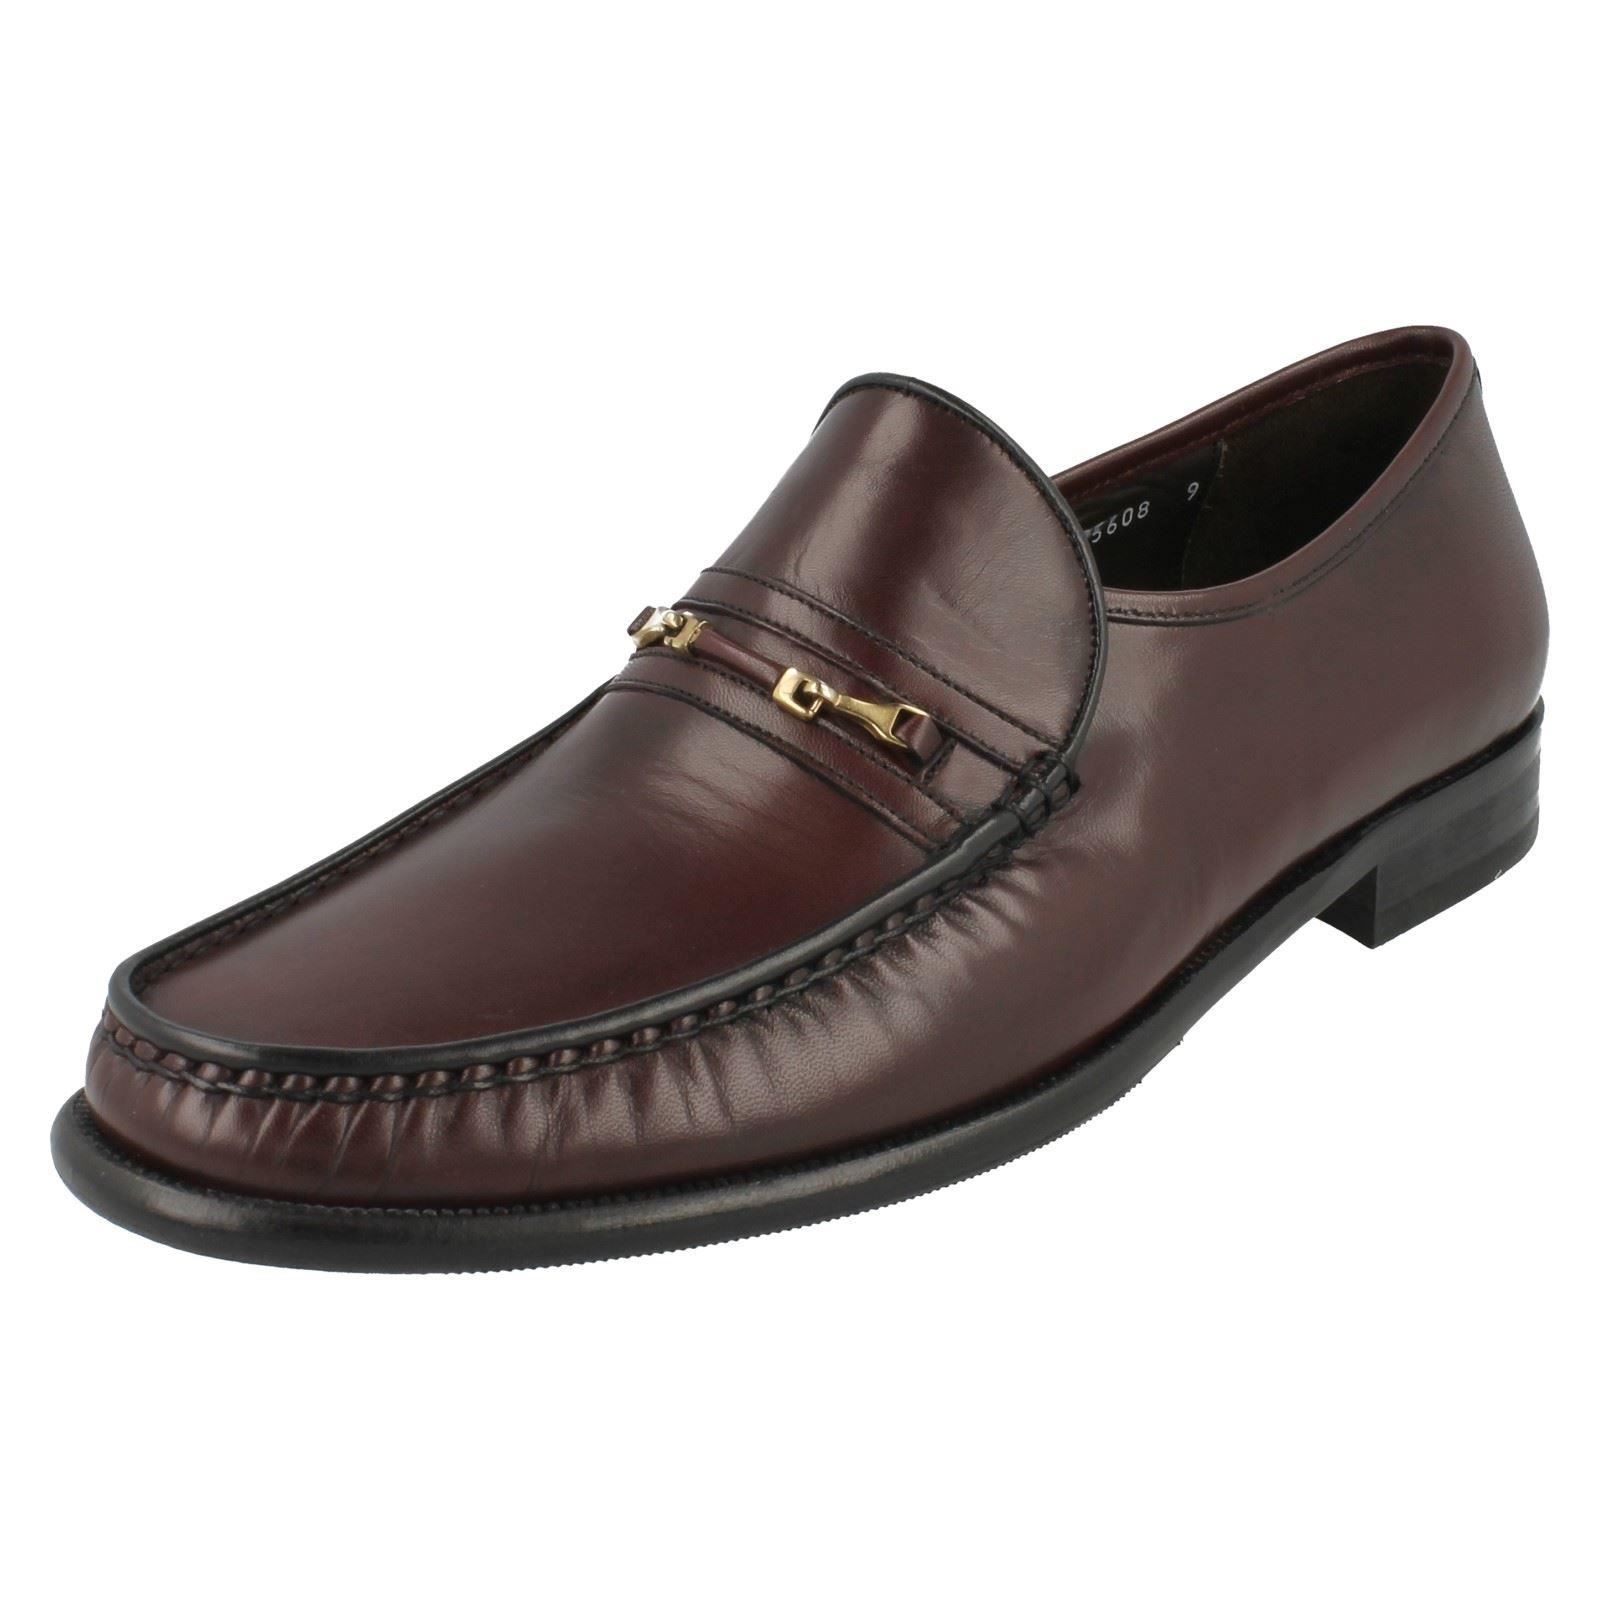 Chaussures Homme Raccord Loake formelle Raccord Homme G Style-Julius - 129,00 £ bf7fc2